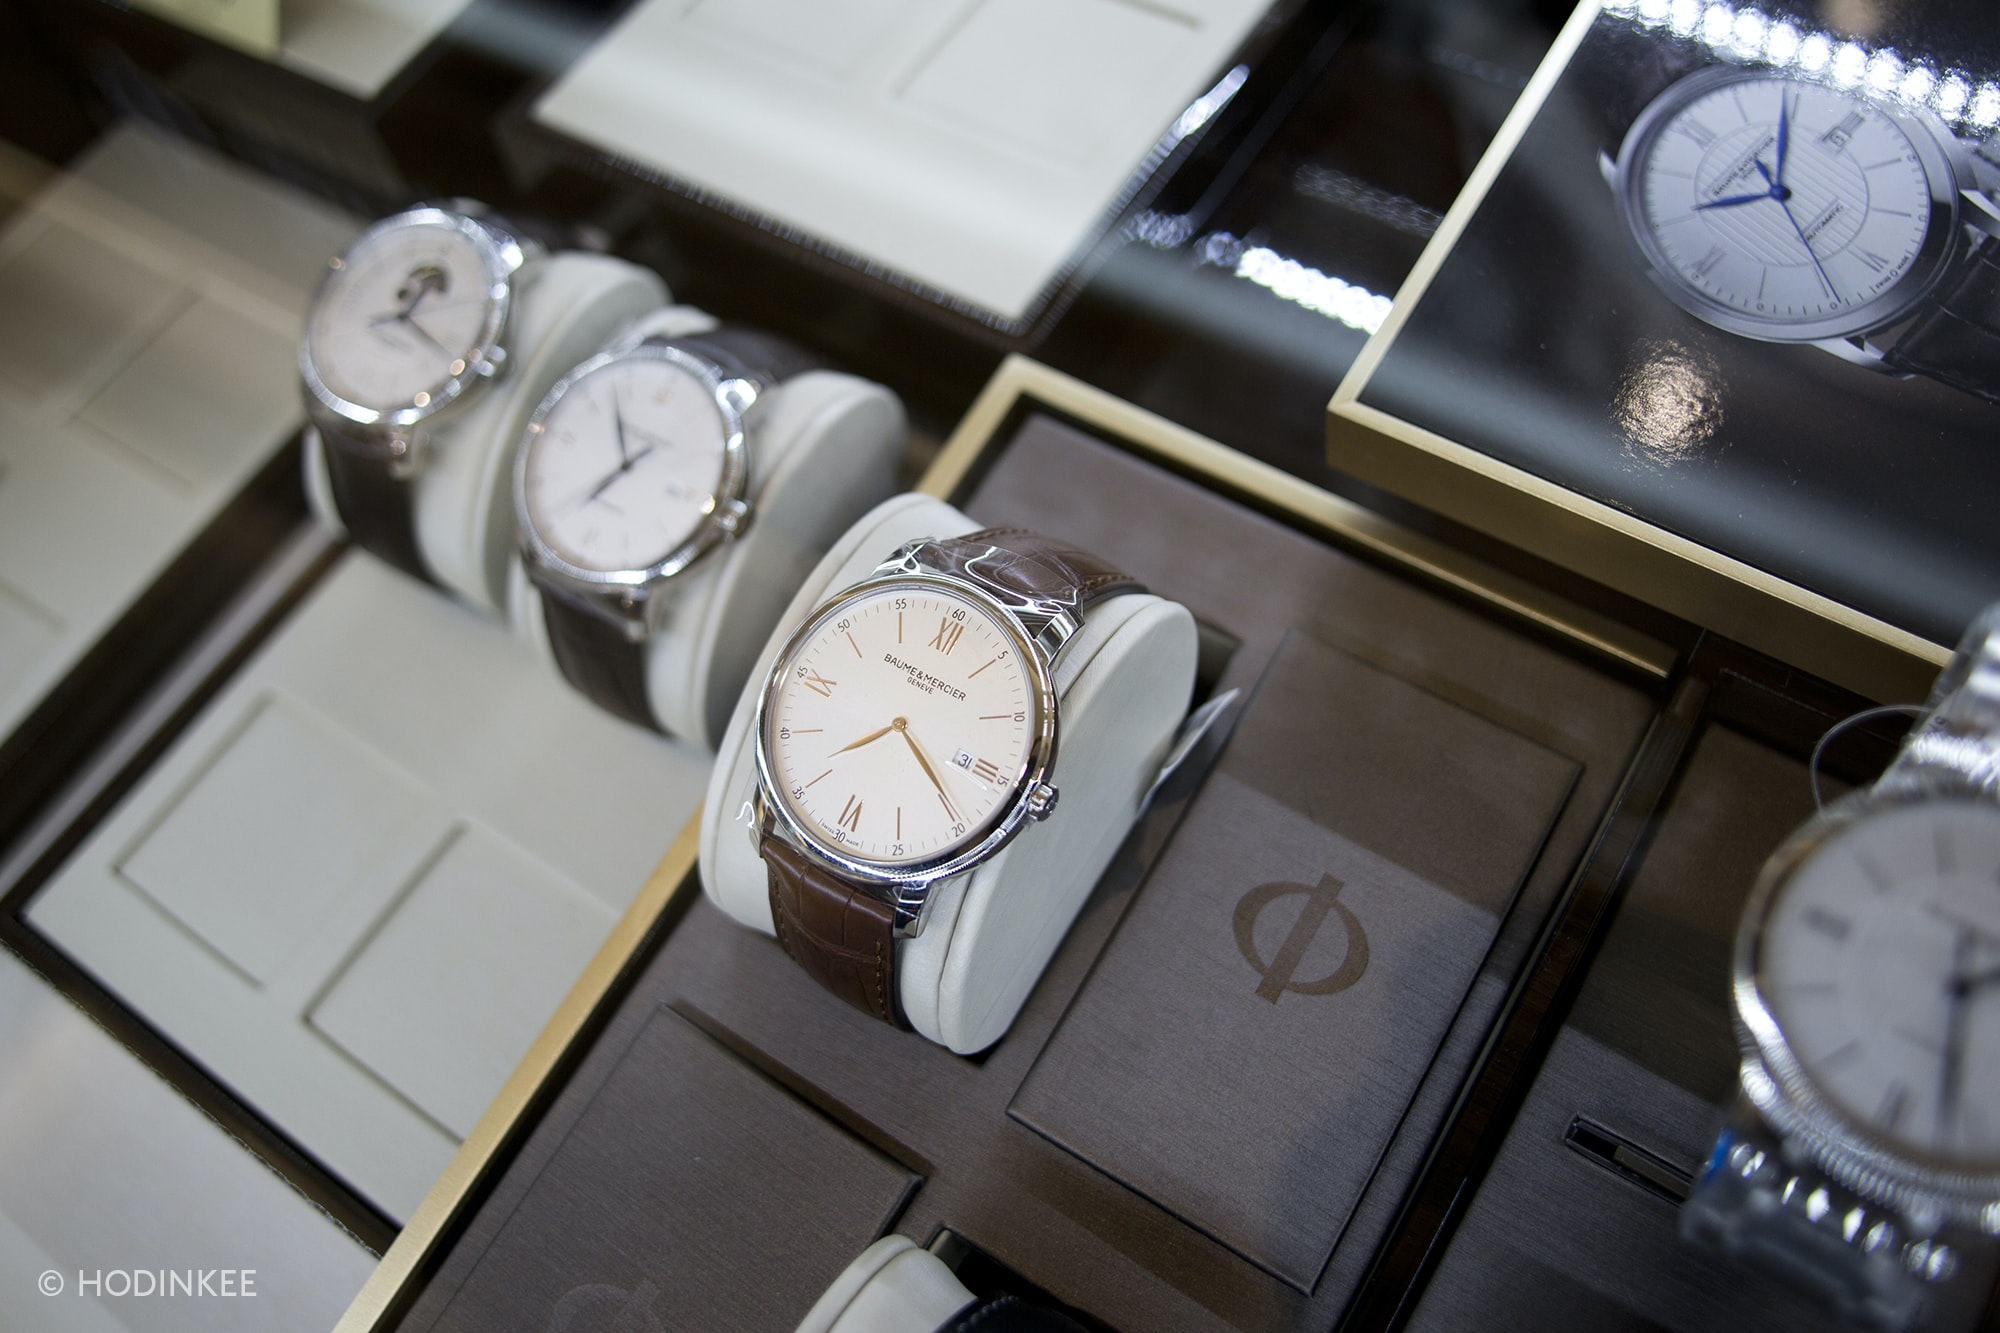 Watch Shopping Chicago: A Visit To The New Marshall Pierce (VIDEO) Watch Shopping Chicago: A Visit To The New Marshall Pierce (VIDEO) 588A9444 copy